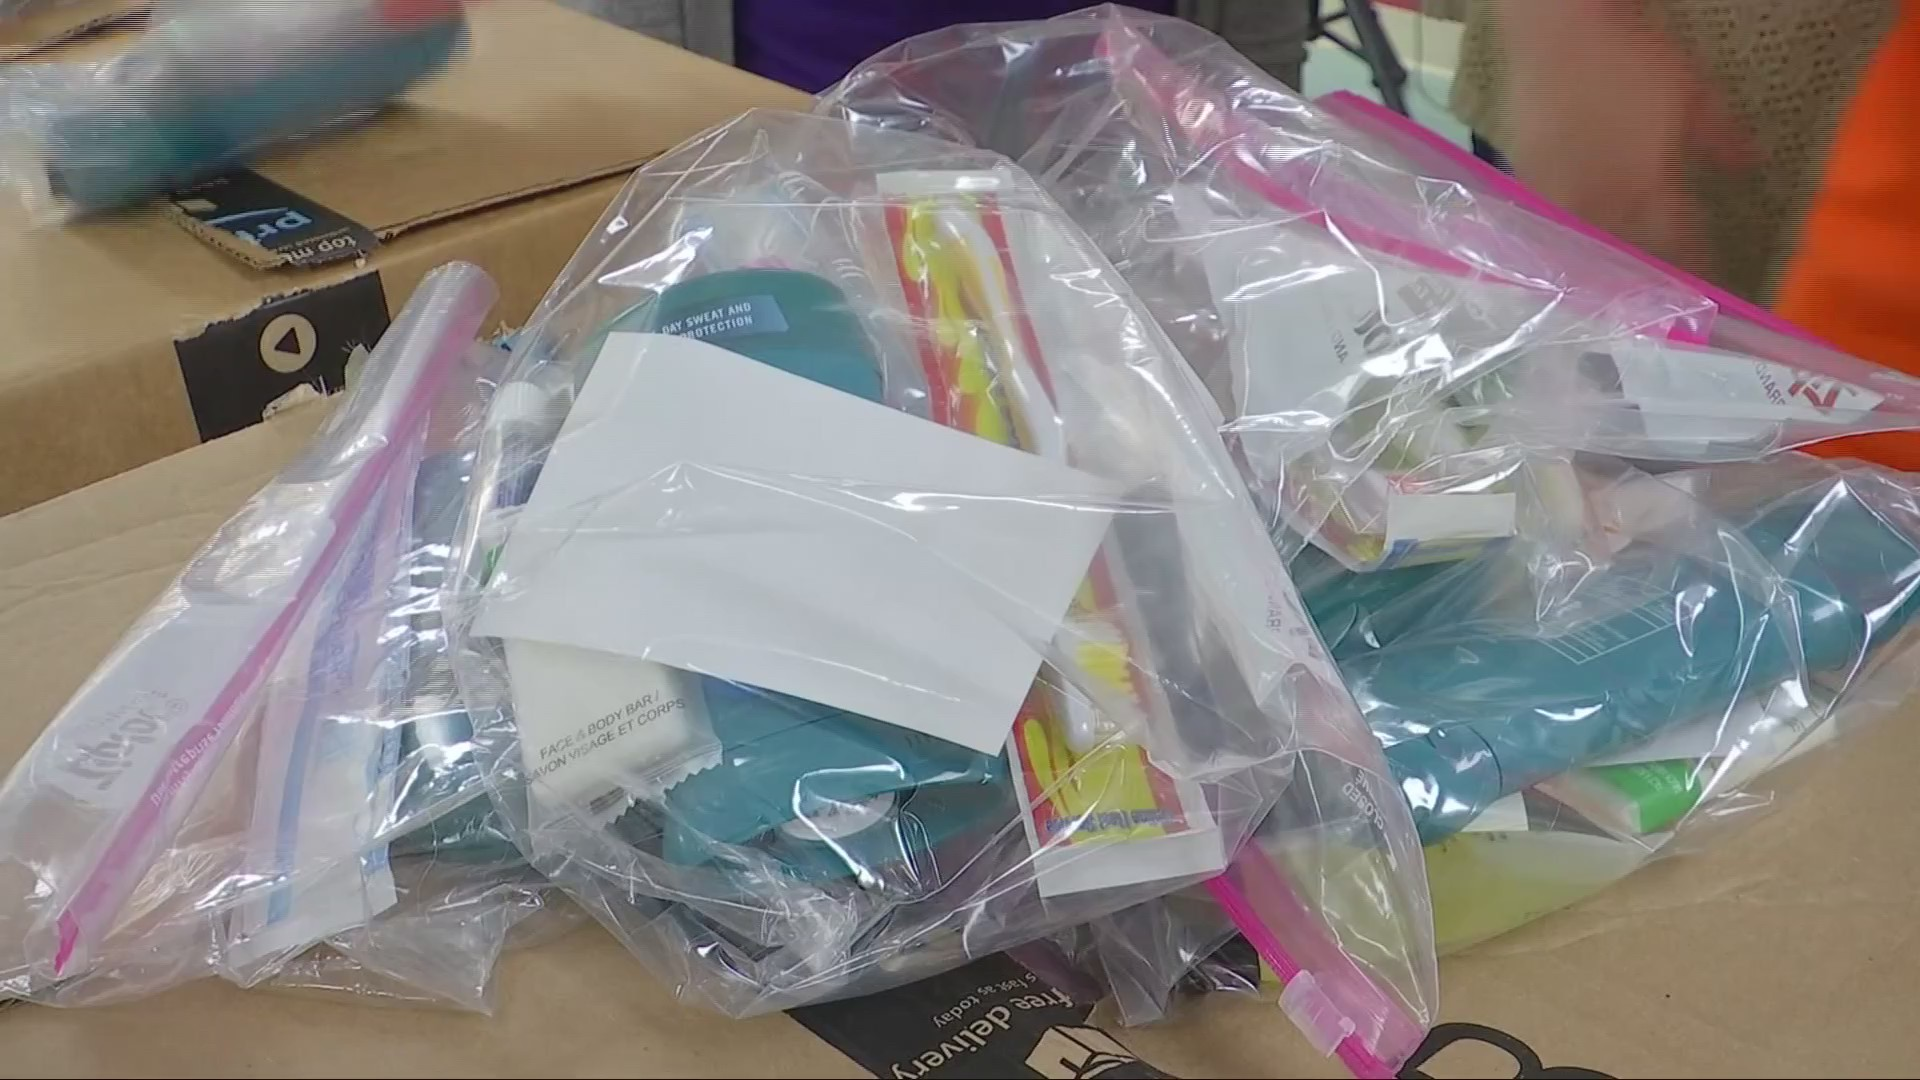 Non-Profits Benefit From Hygiene Kit Donations